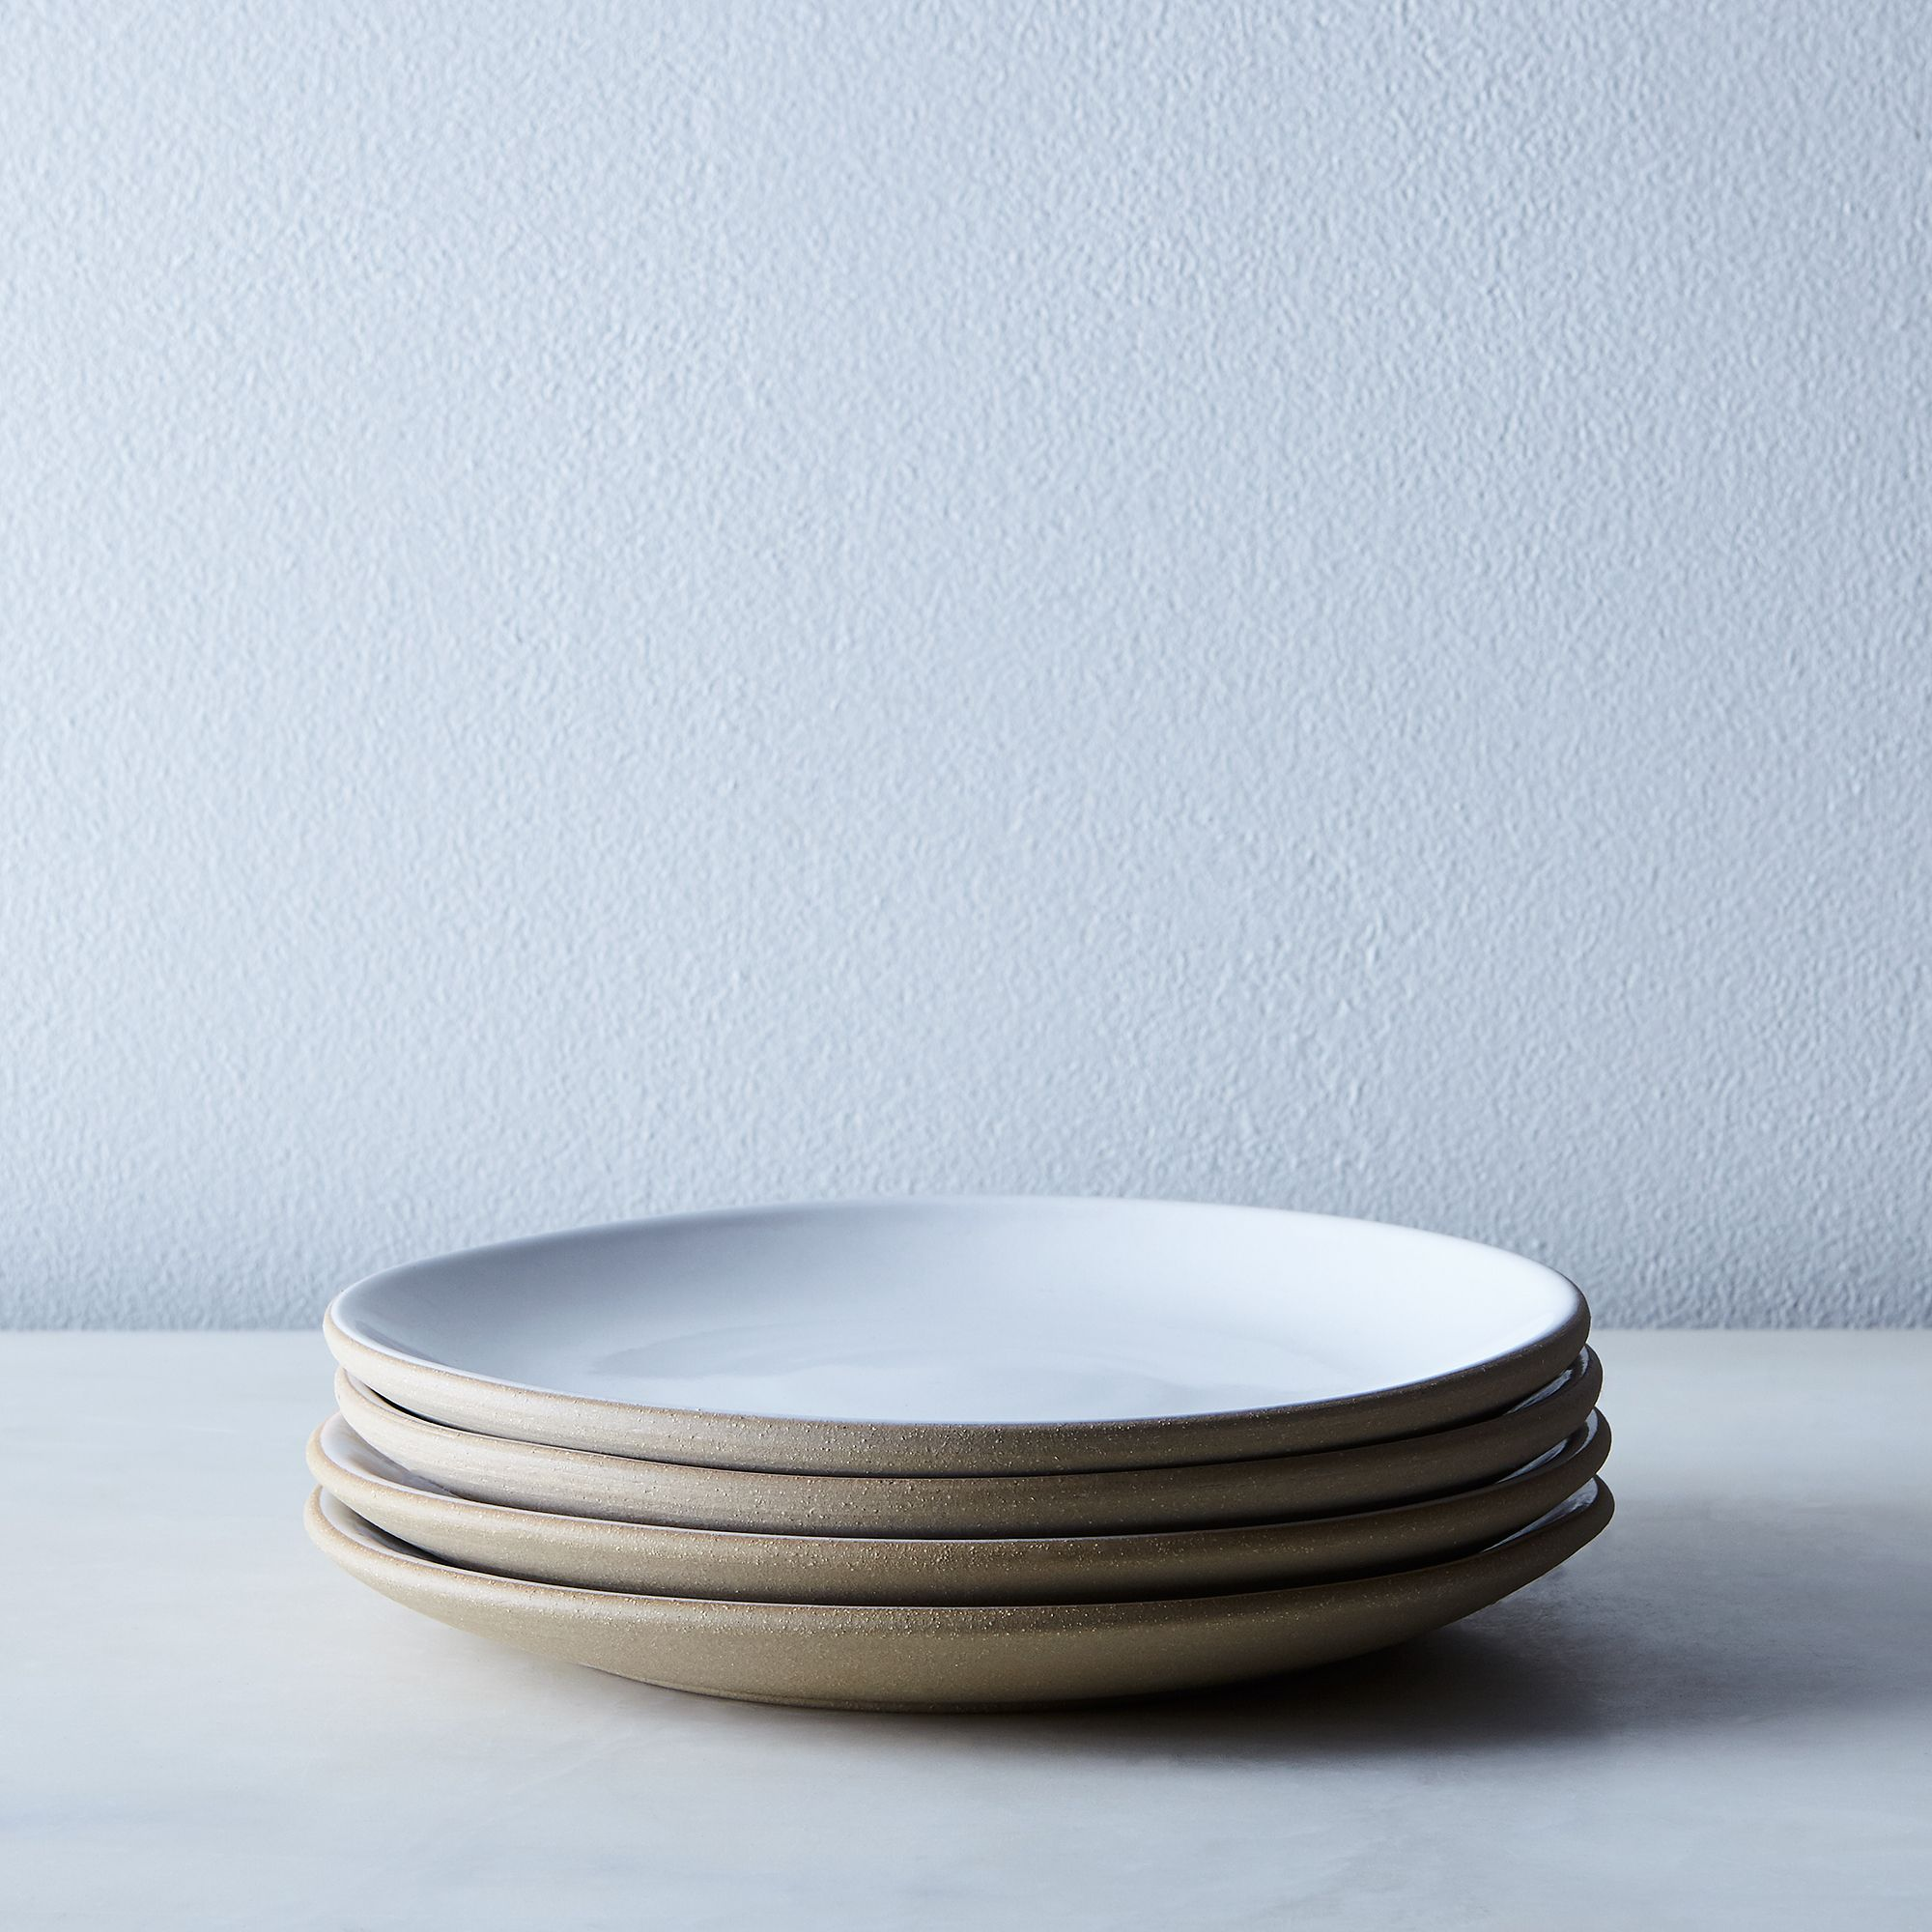 822a0f1a a3fc 4dfe 86b3 fbca72b4bef7  2017 0530 food52 by jono pandolfi 4 piece place setting salad plates silo rocky luten 001